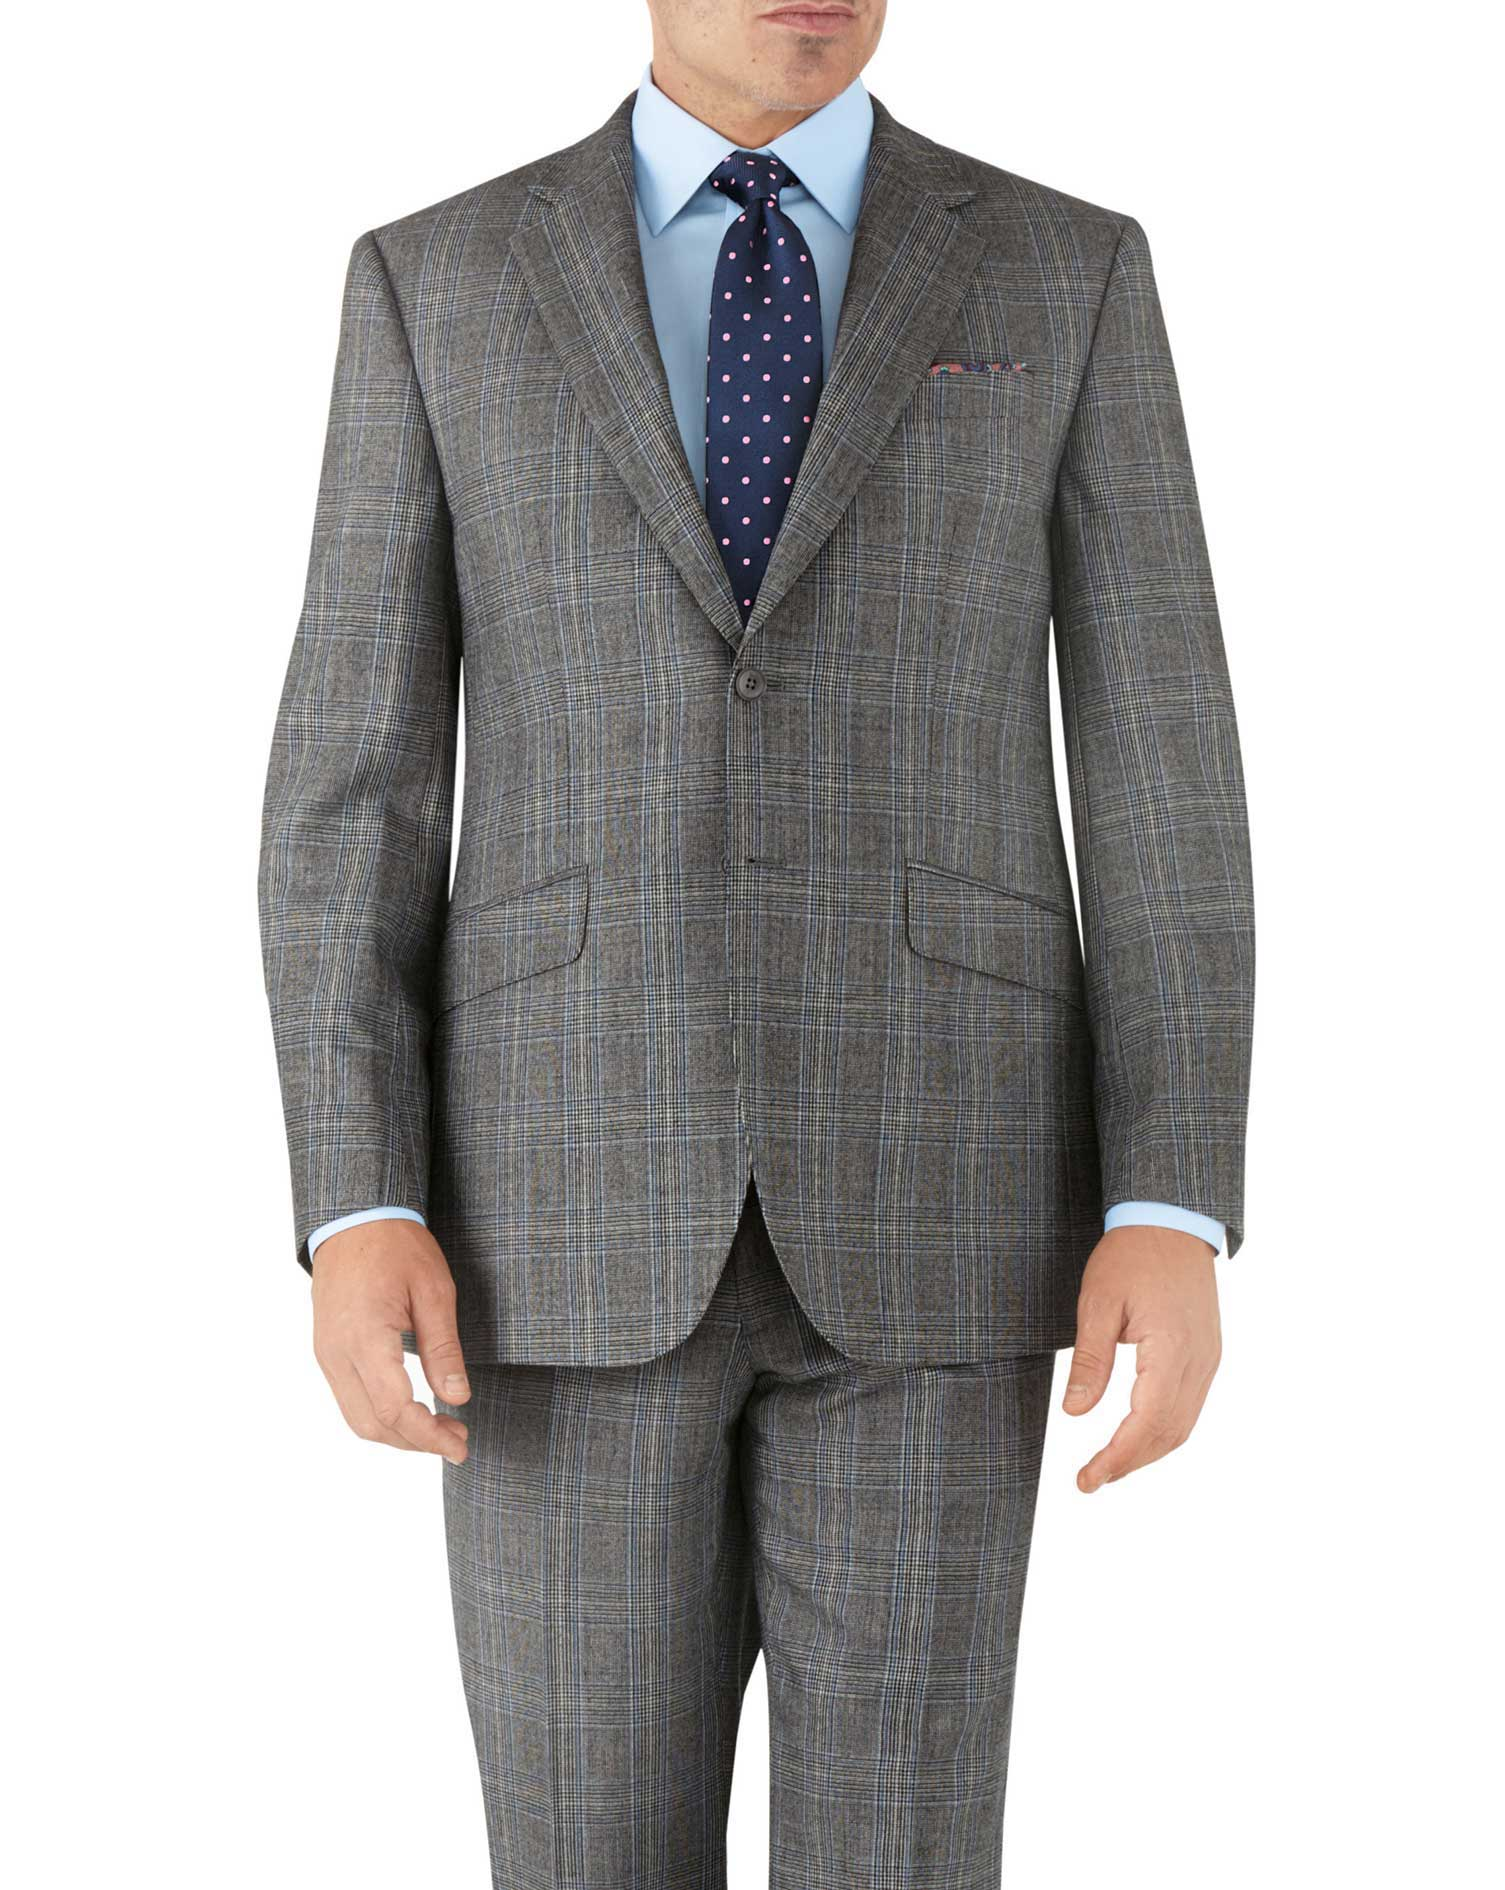 Silver Prince Of Wales Classic Fit Flannel Business Suit Wool Jacket Size 42 Regular by Charles Tyrw